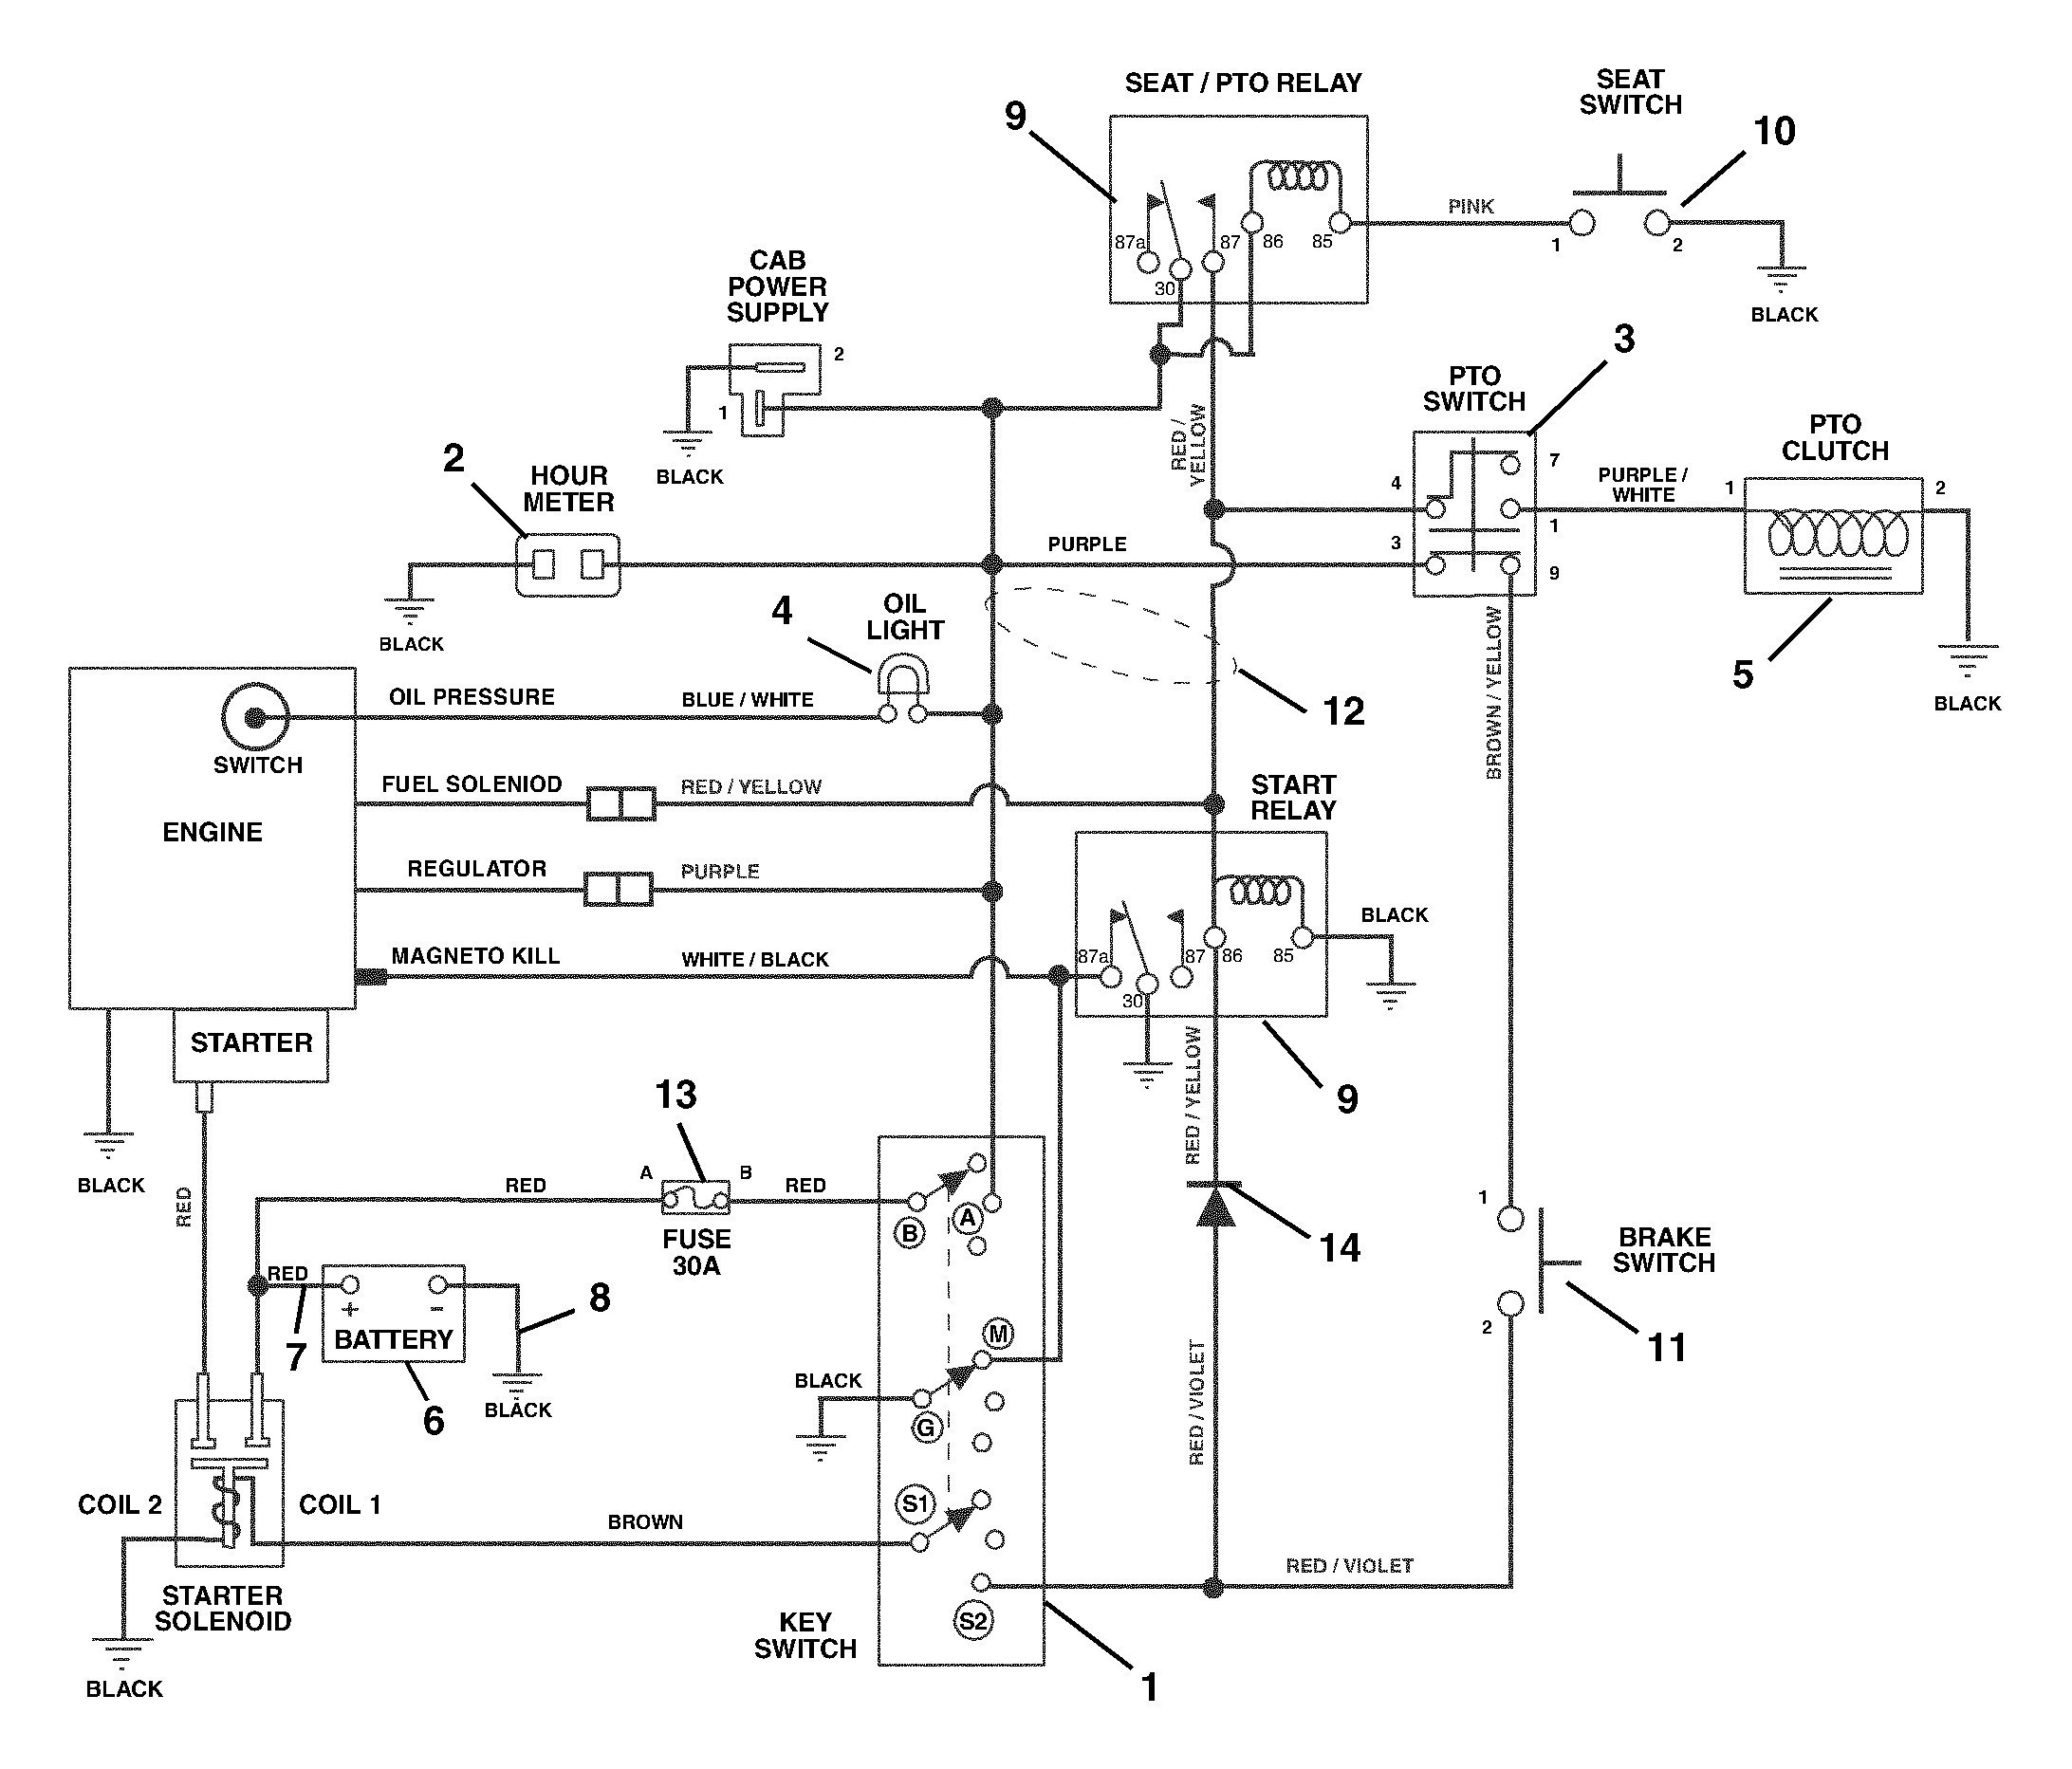 Beautiful Briggs And Stratton Starter Solenoid Wiring Diagram que